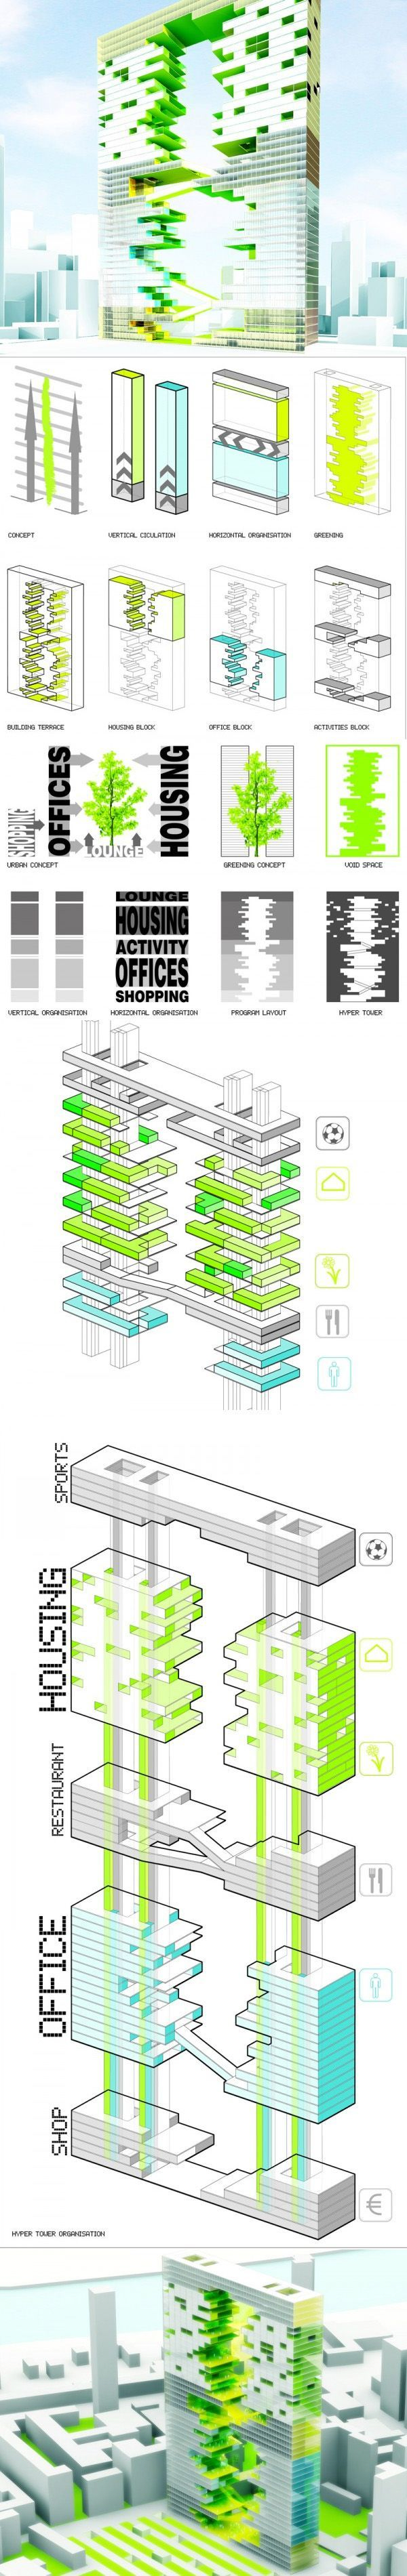 """Ecological Skyscraper in Paris with Green Terraces in Each Floor >> French architect Jaubert Francois proposes a new skyscraper for Paris that consists of two towers joined by a vertical park that starts at the ground plane and finishes at a soccer pitch on the rooftop. The """"Hyper-Tower"""" is a mixed-use development with residential and sports facilities on the top levels and commercial and leisure areas in the first floors. .... The UX Blog podcast is also available on iTunes."""